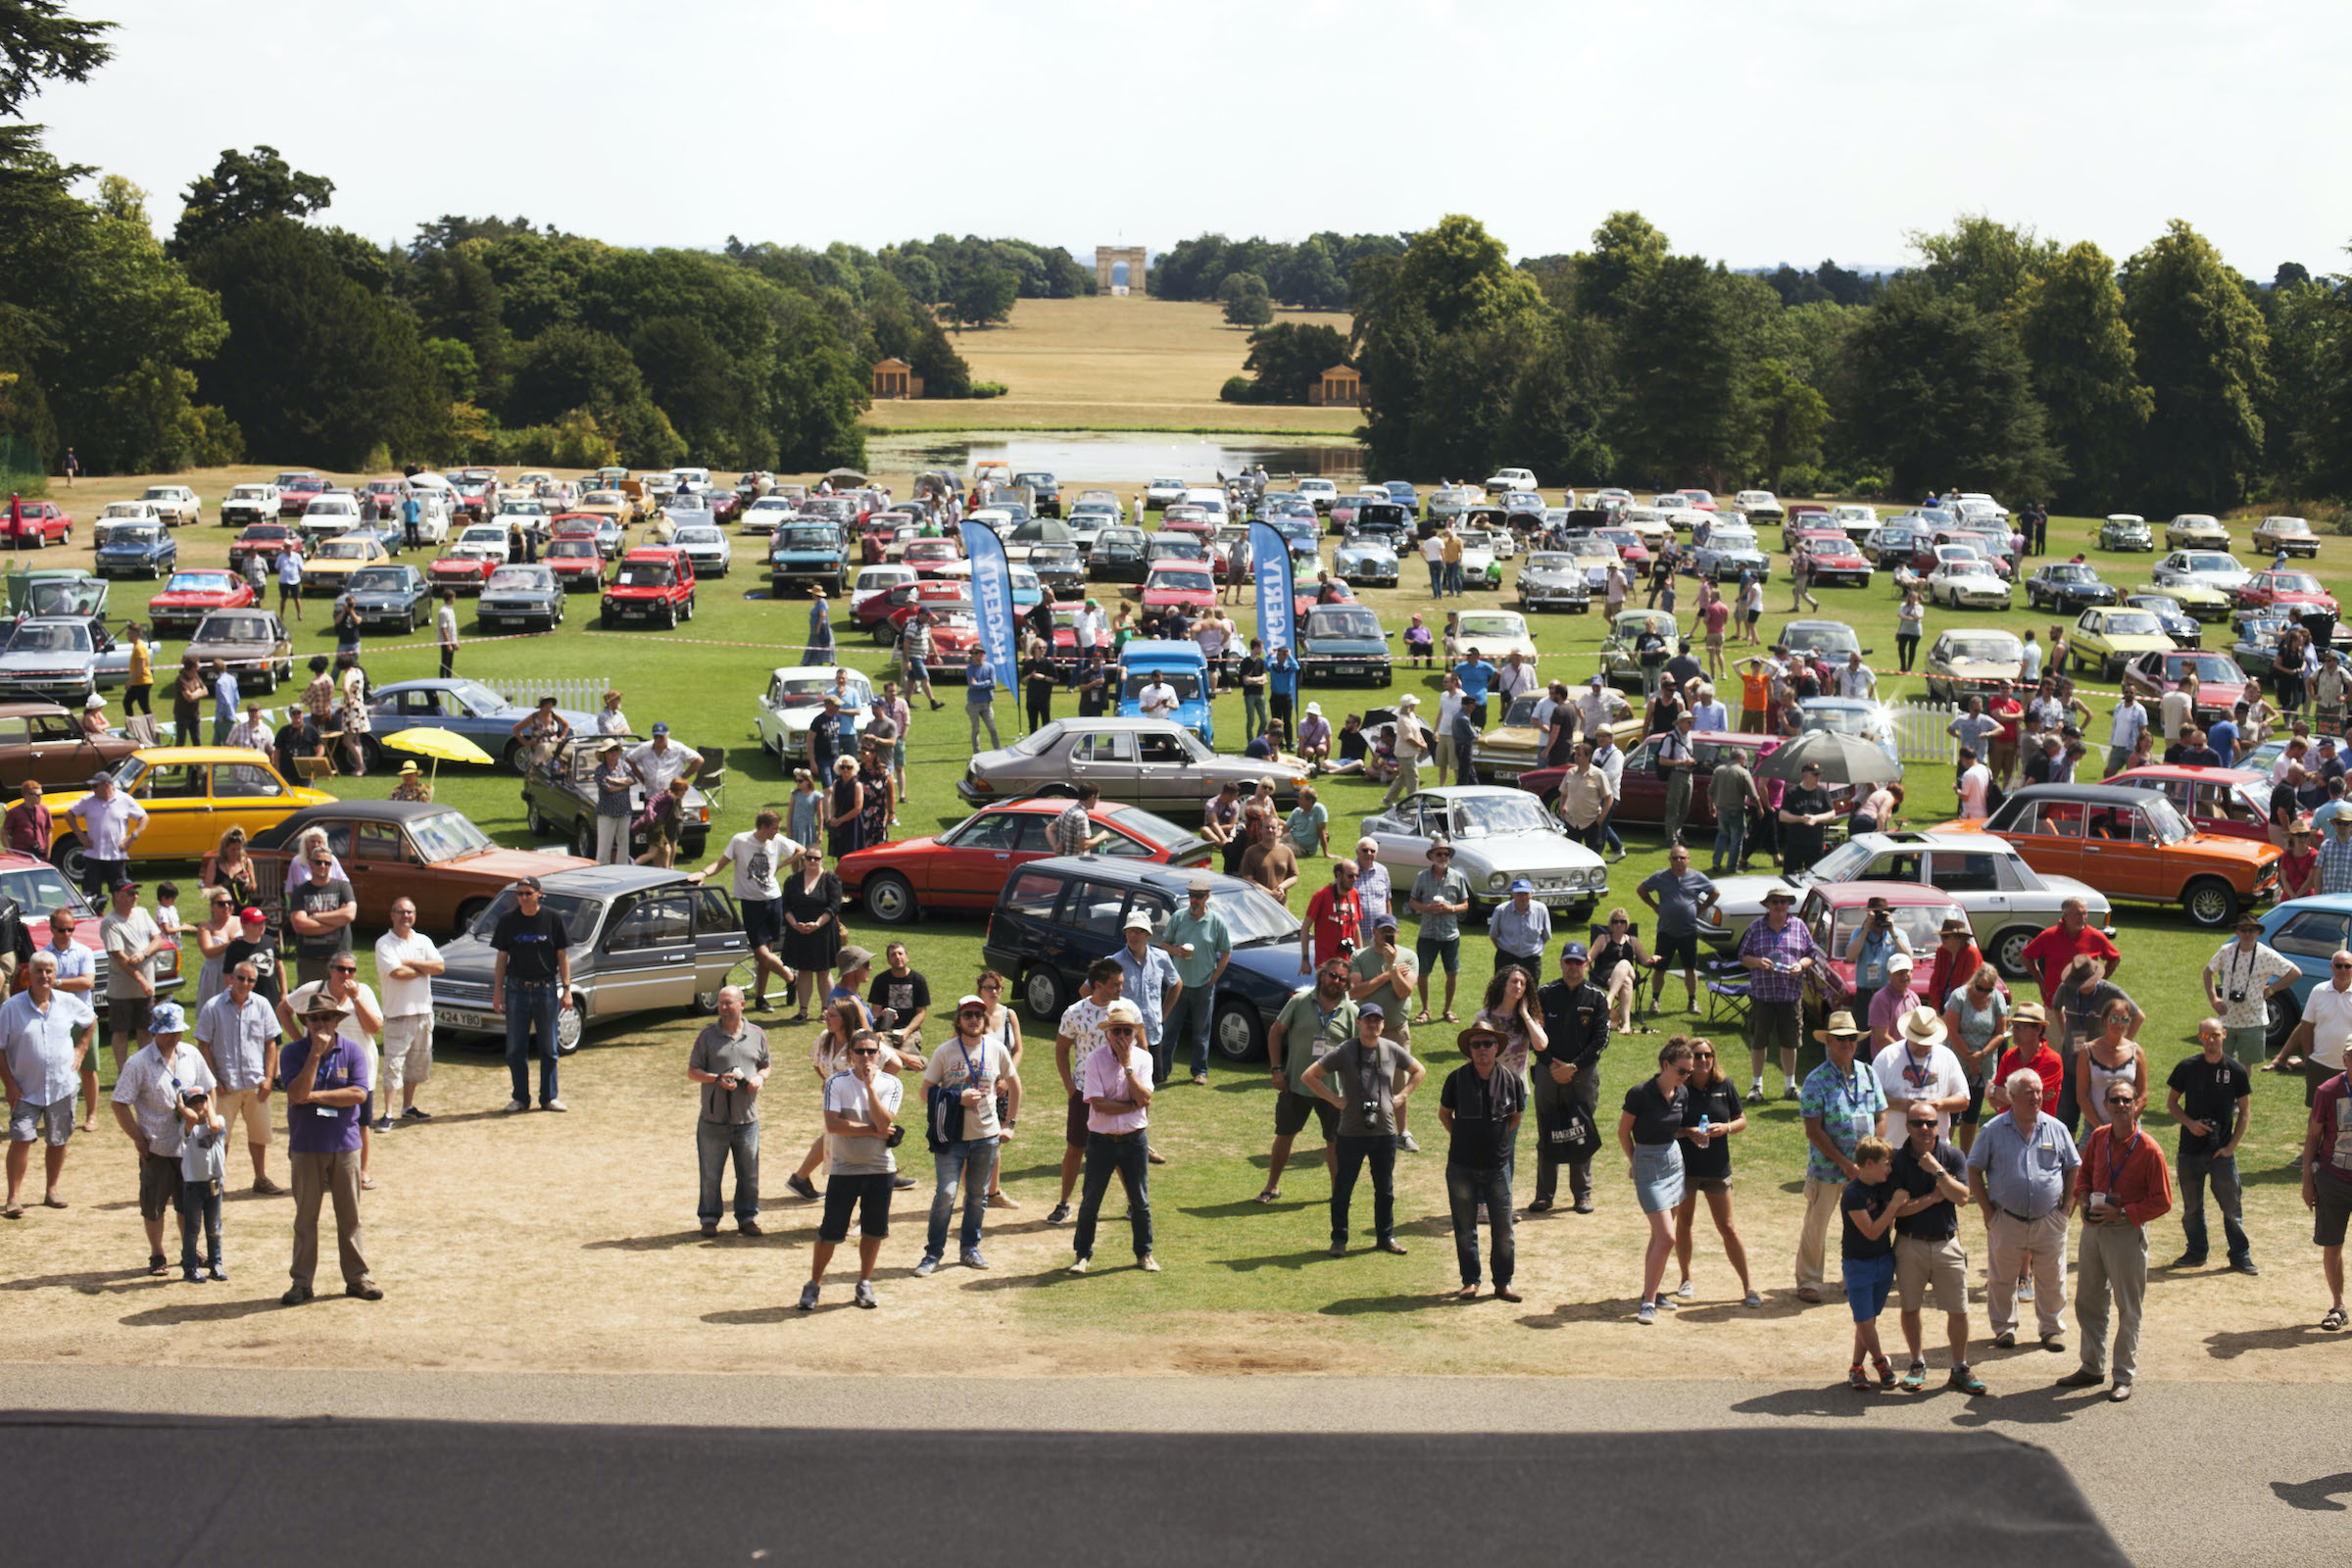 Hagerty's Festival of the Unexceptional returns on 31 July to celebrate the most marvellously mundane motor cars